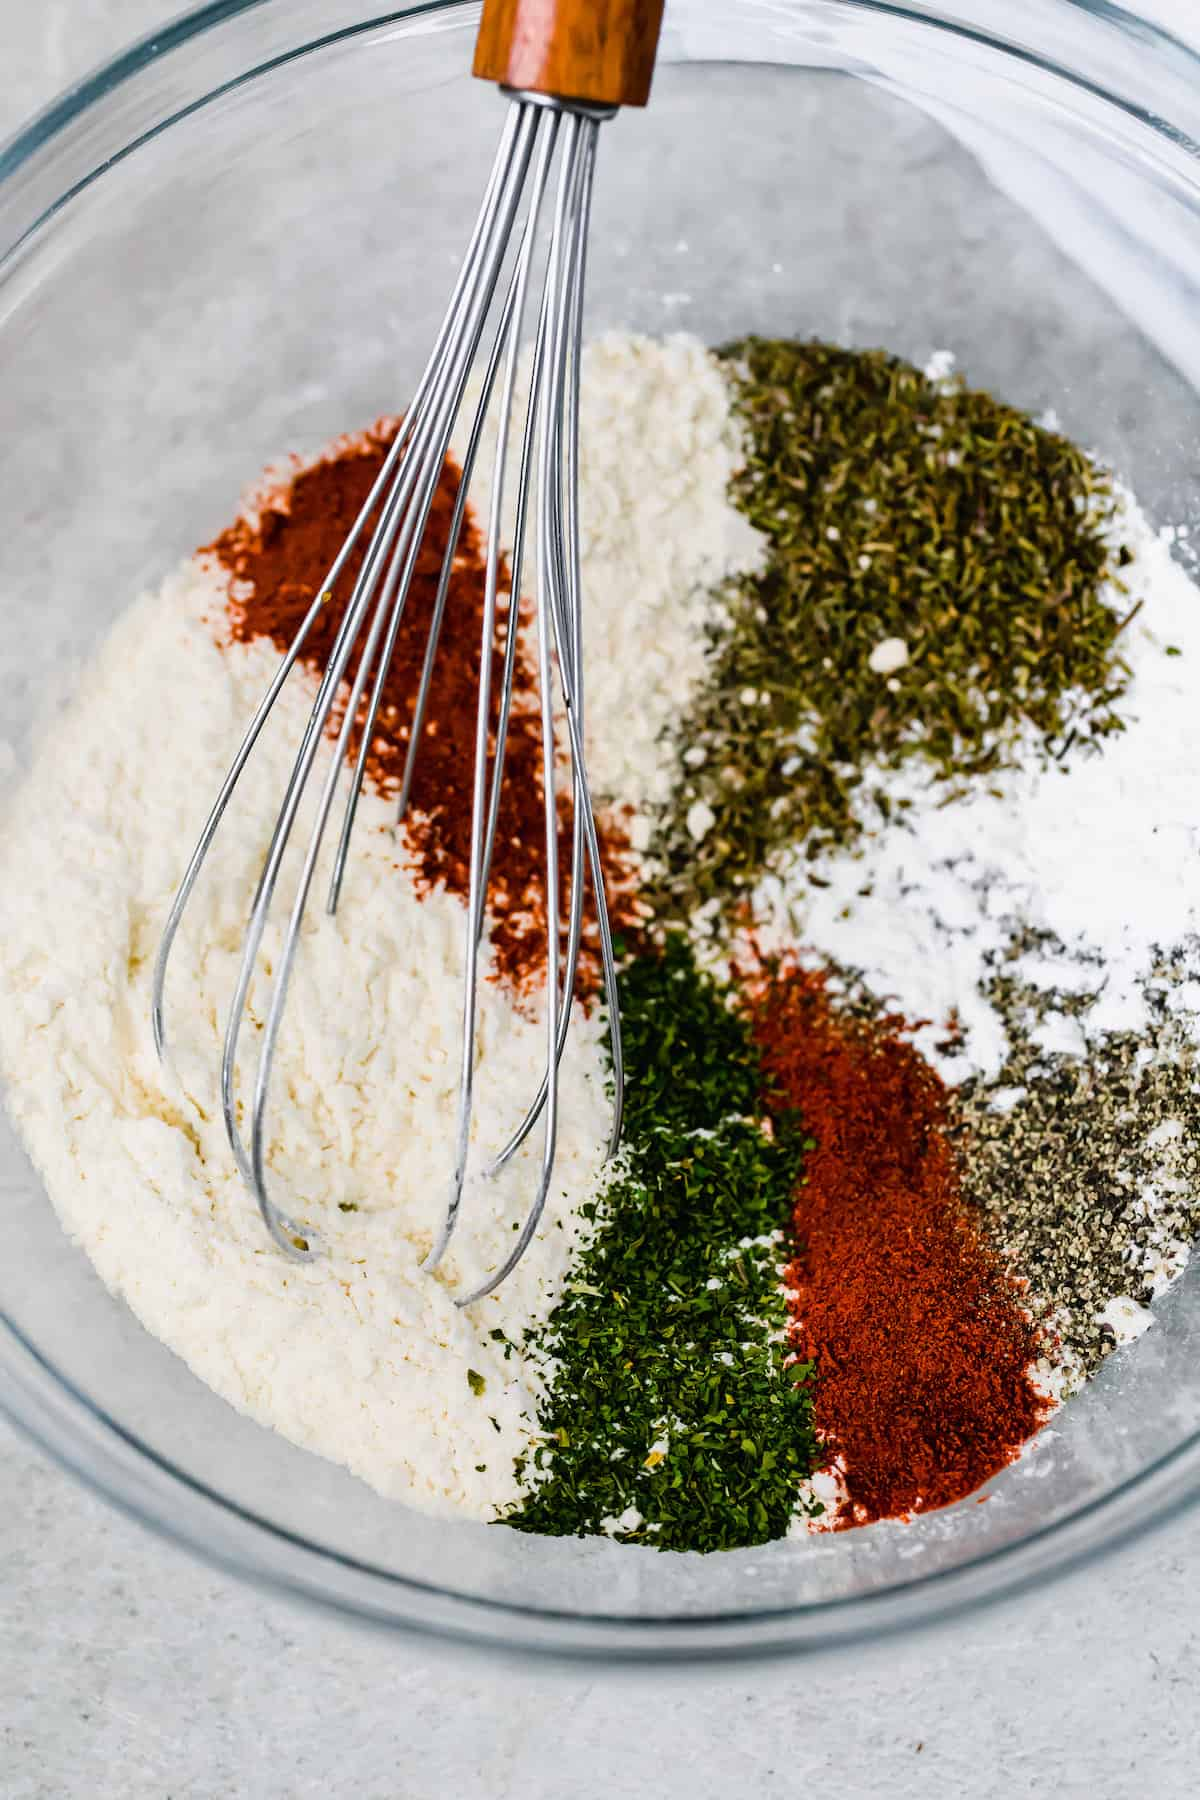 The Flour Mixture Ingredients in a Glass Bowl